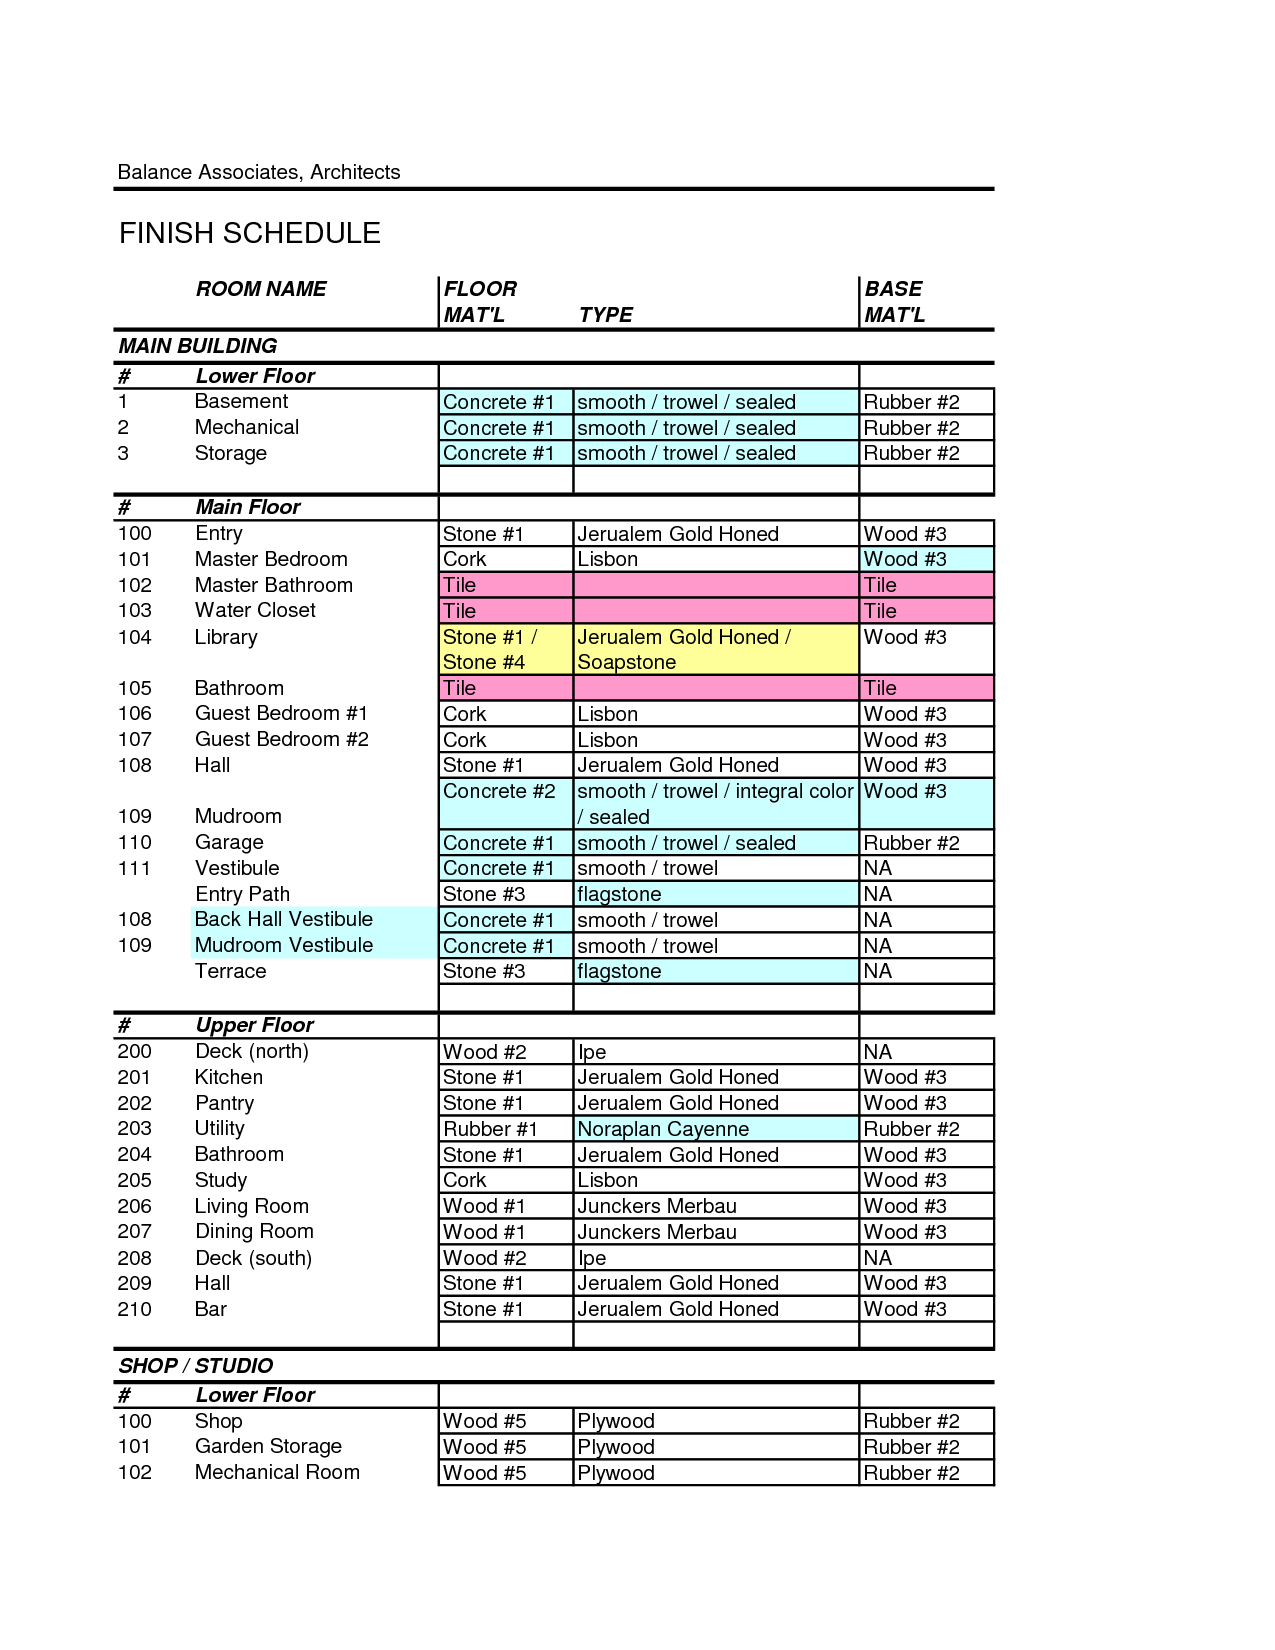 Sample Of Interior Finish Schedule Excel Template With Interior Finish Schedule Excel Template Download For Free